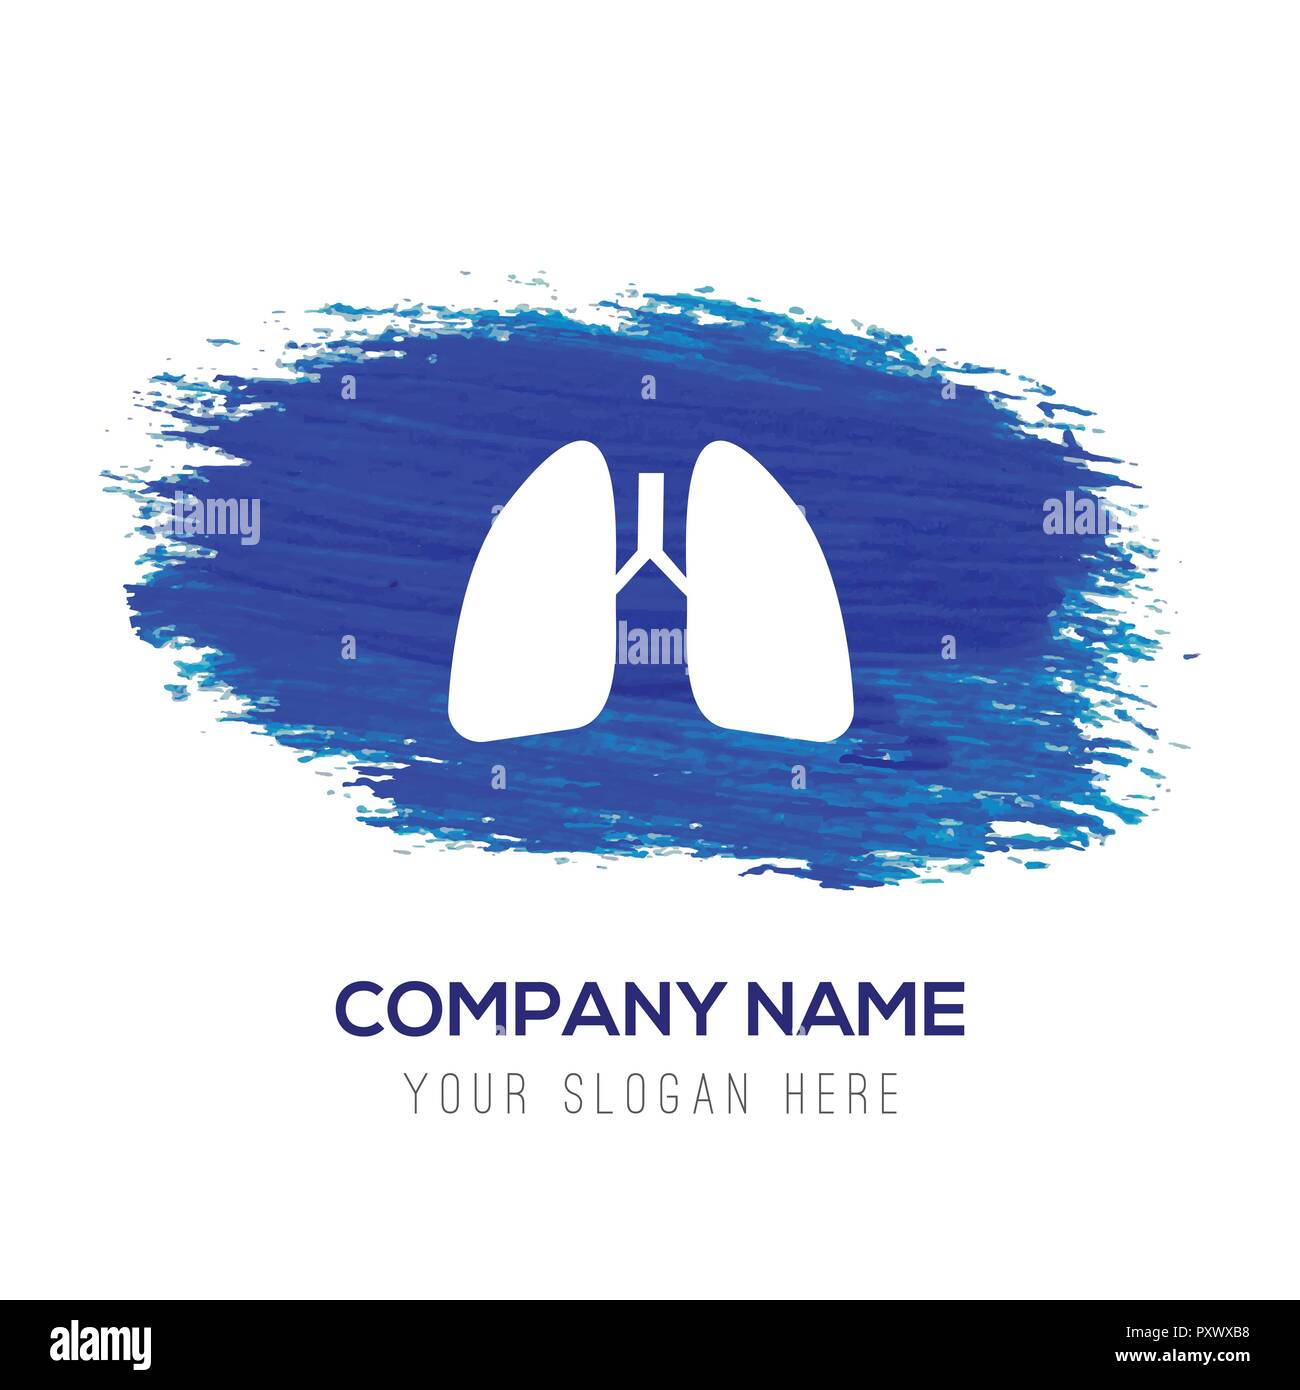 lungs, icon, - Blue watercolor background - Stock Vector